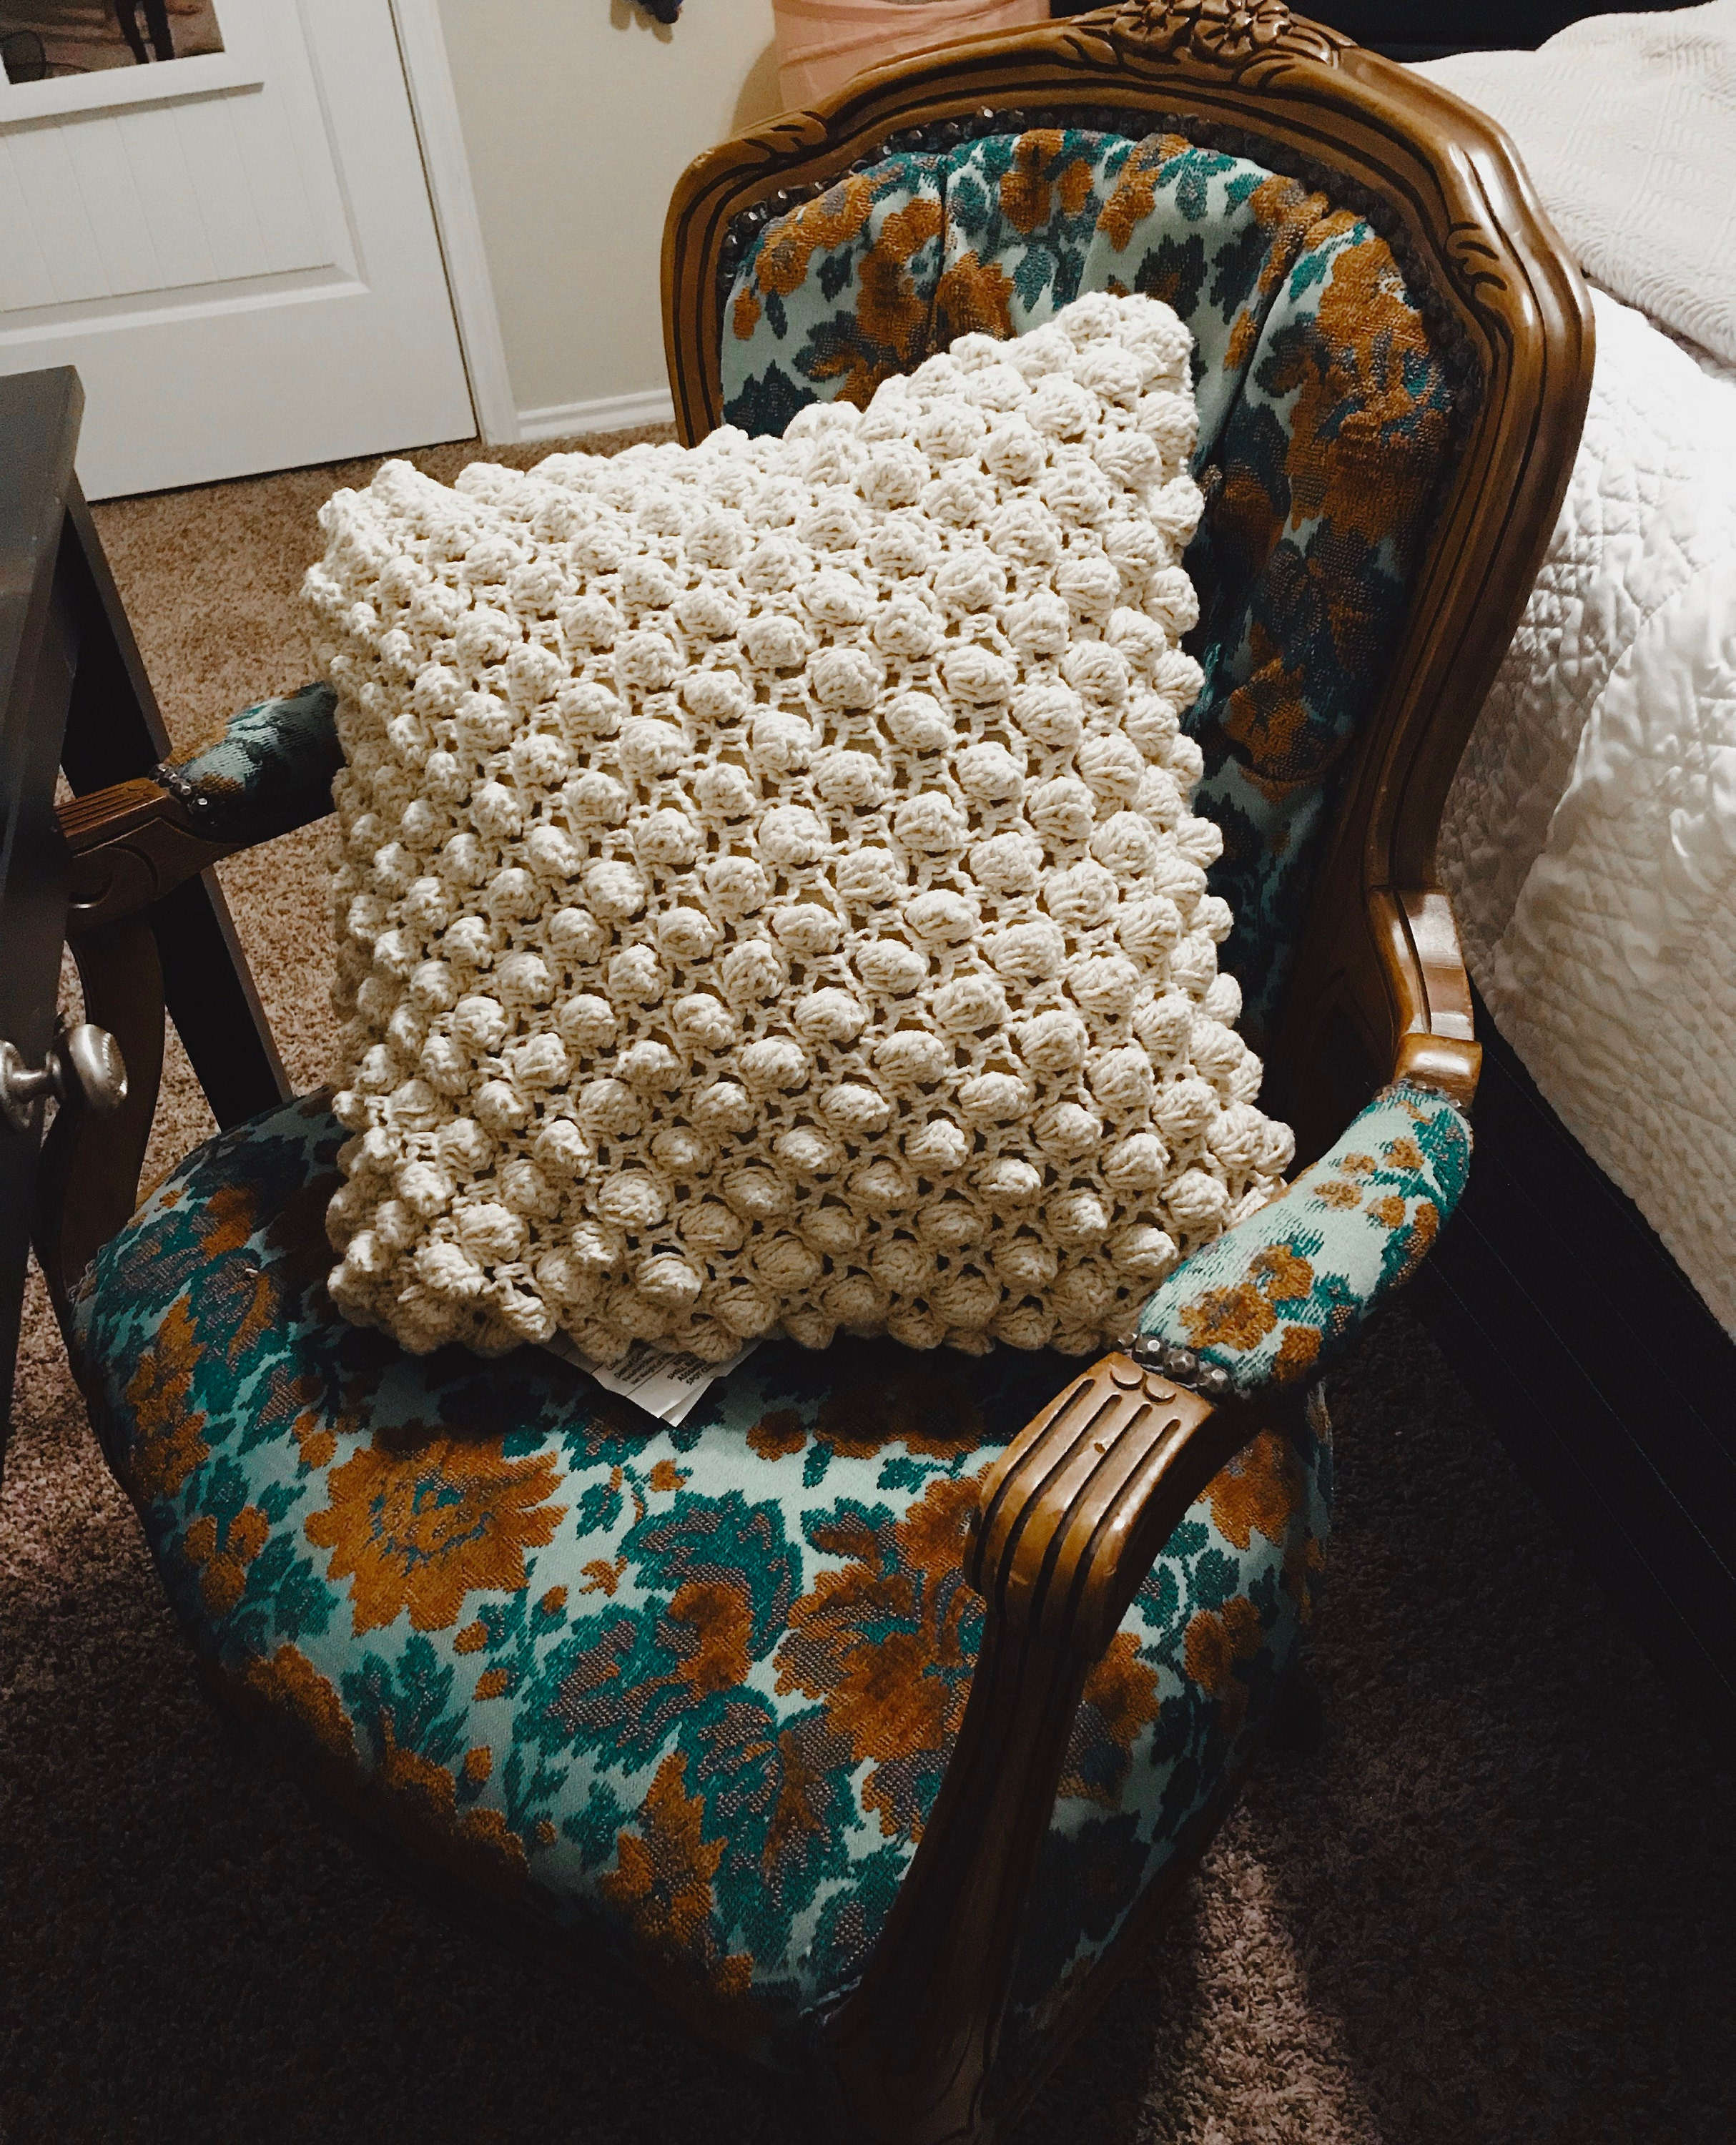 Vintage chair and pillow was 10 dollar